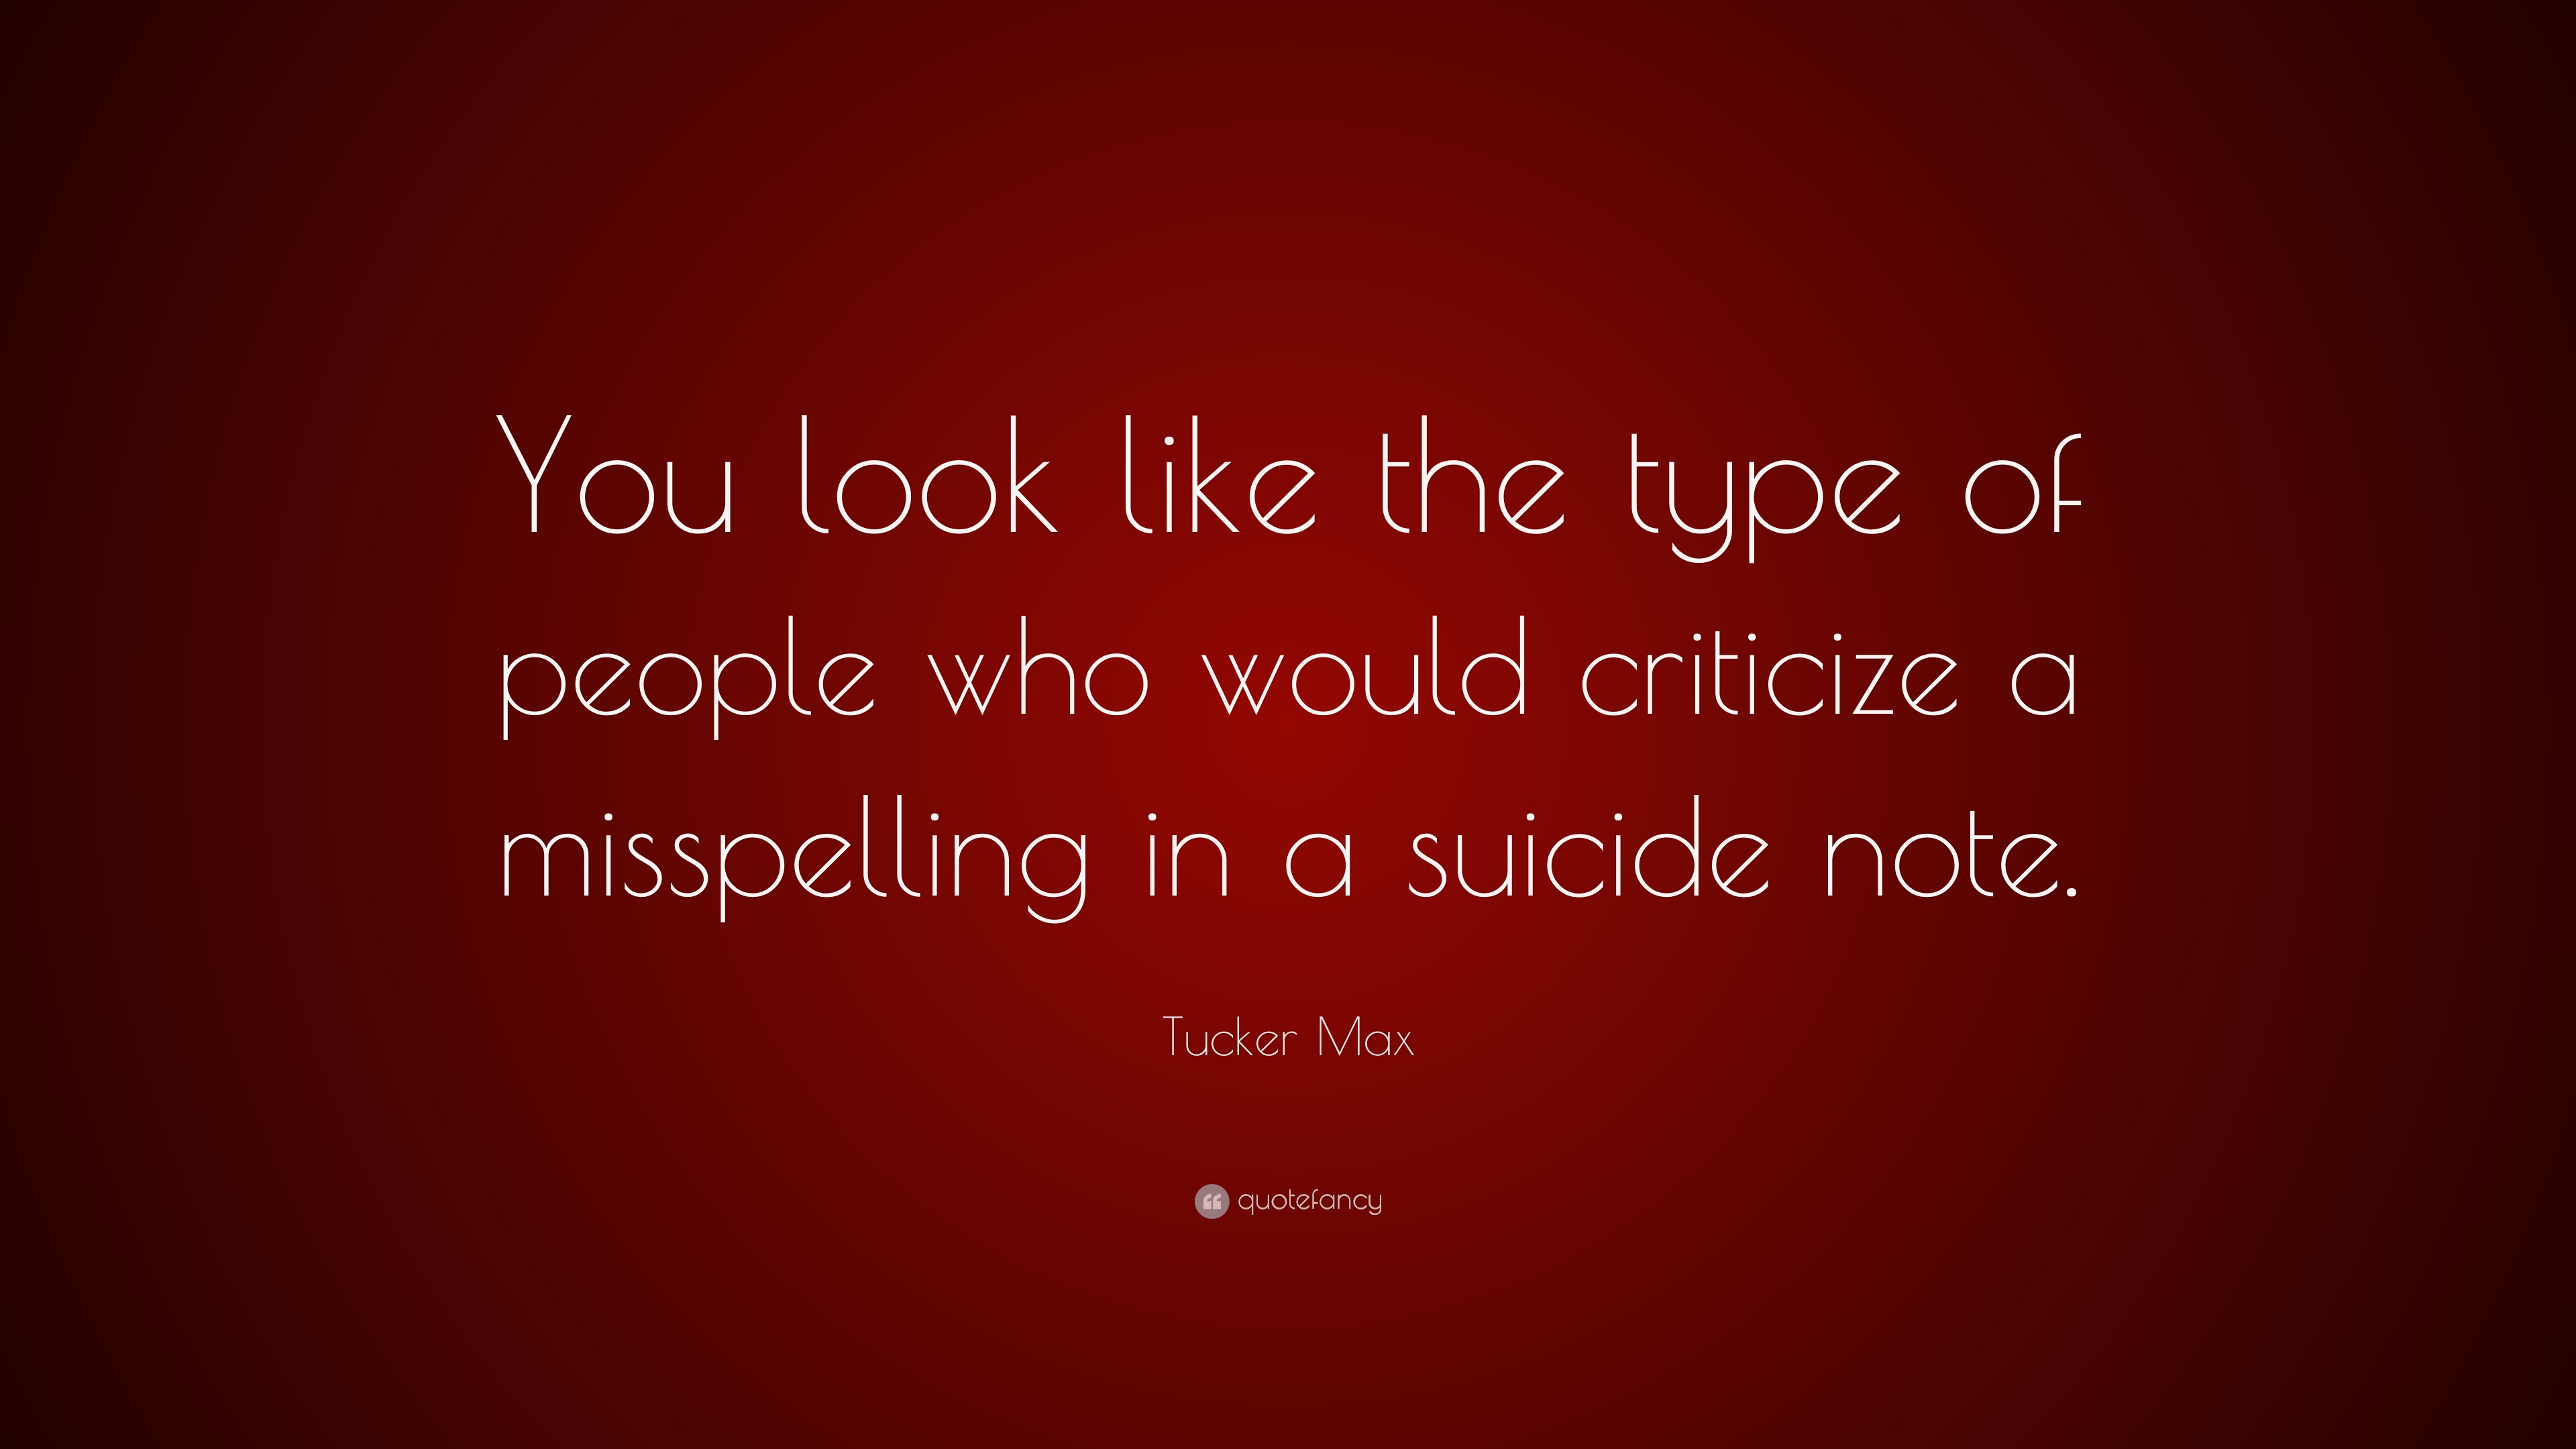 Tucker Max Quote You Look Like The Type Of People Who Would Criticize A